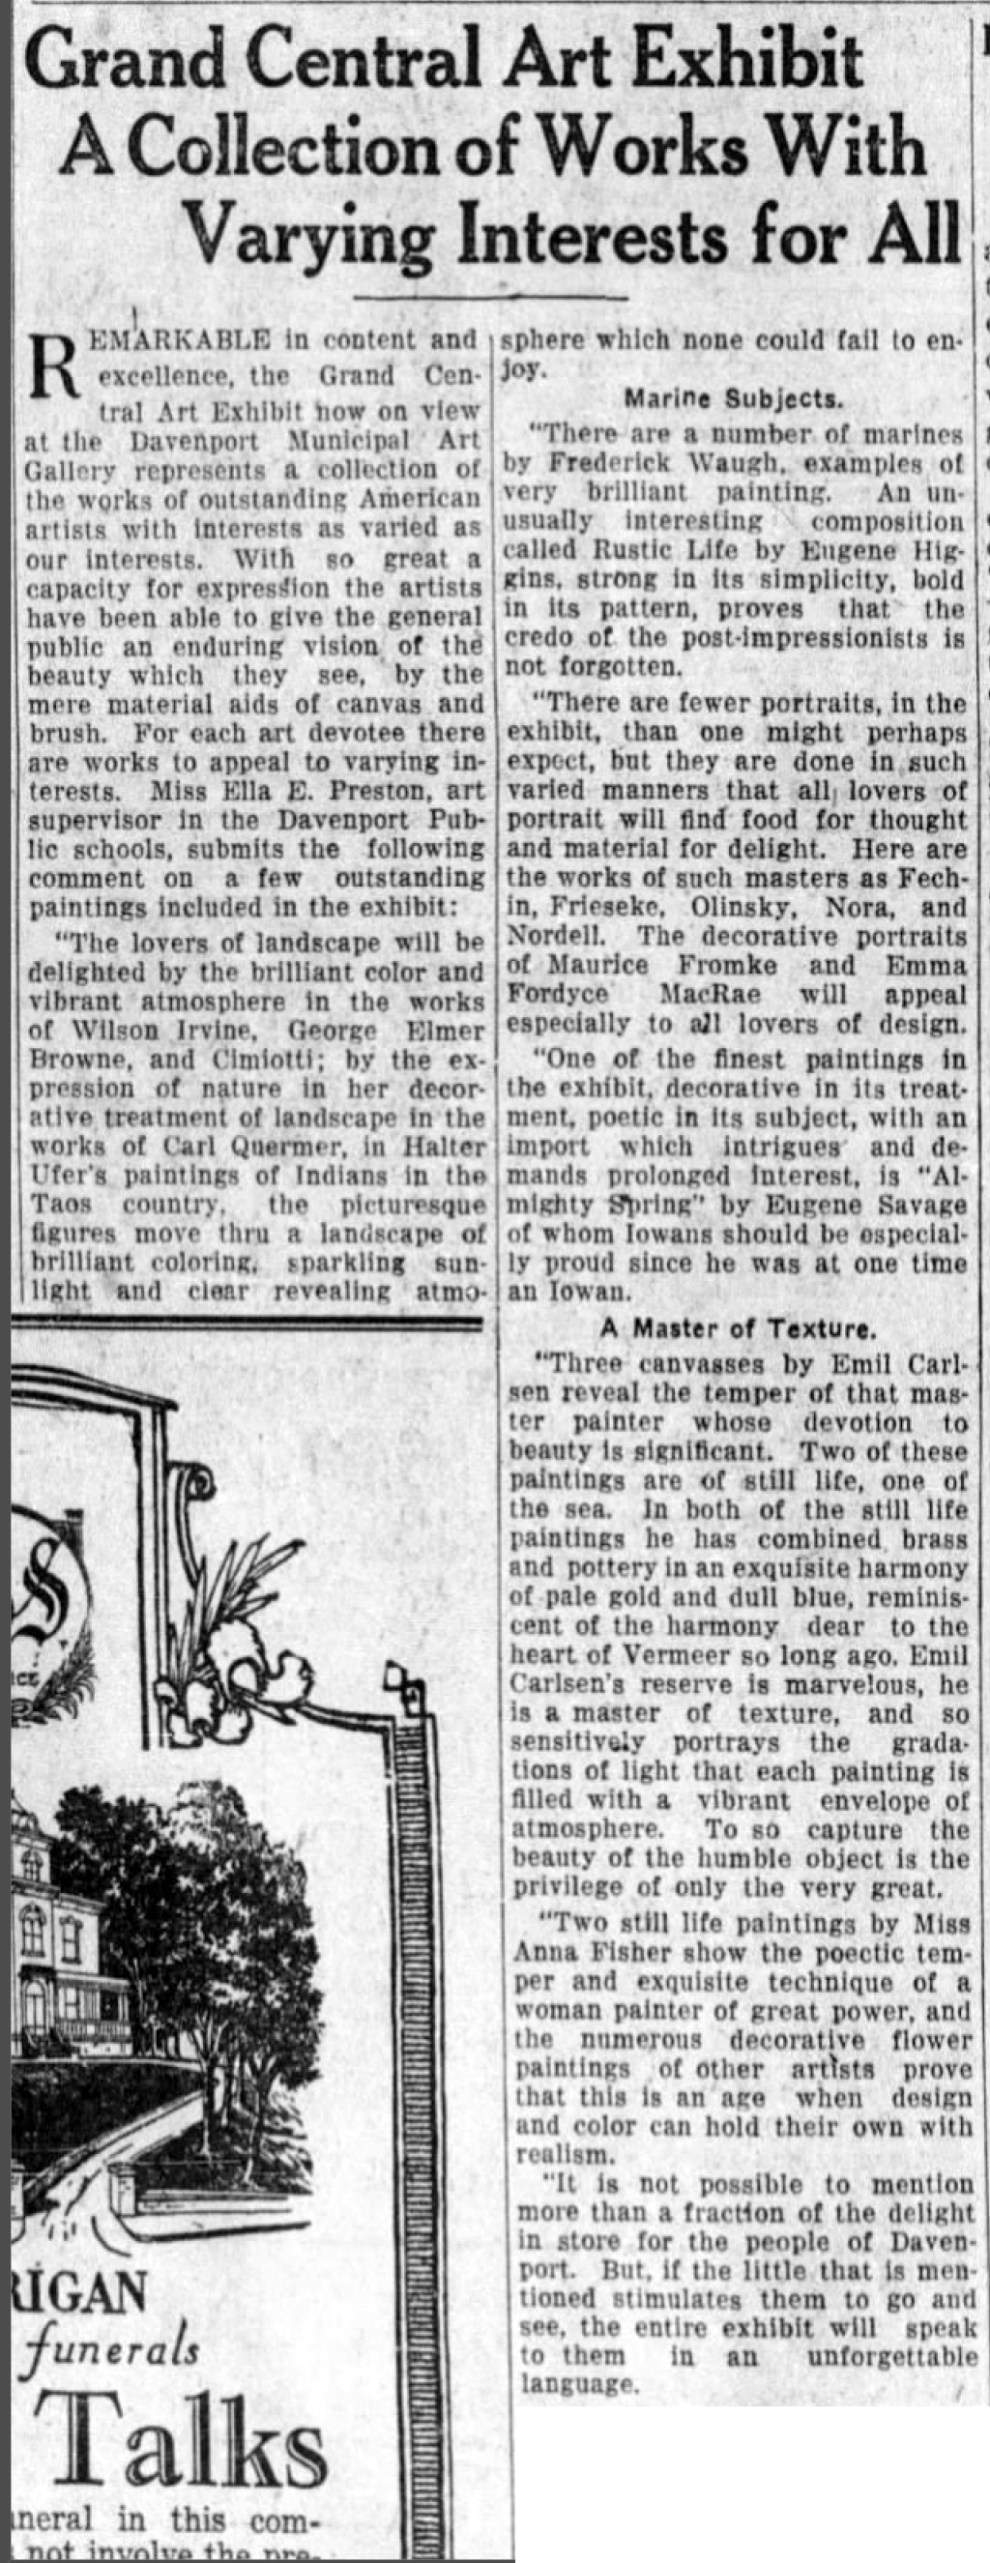 """Quad-City Times, Davenport, IA, """"Grand Central Art exhibit a collection of works with varying interest for all"""", Monday, November 11, 1929, page 14, not illustrated."""